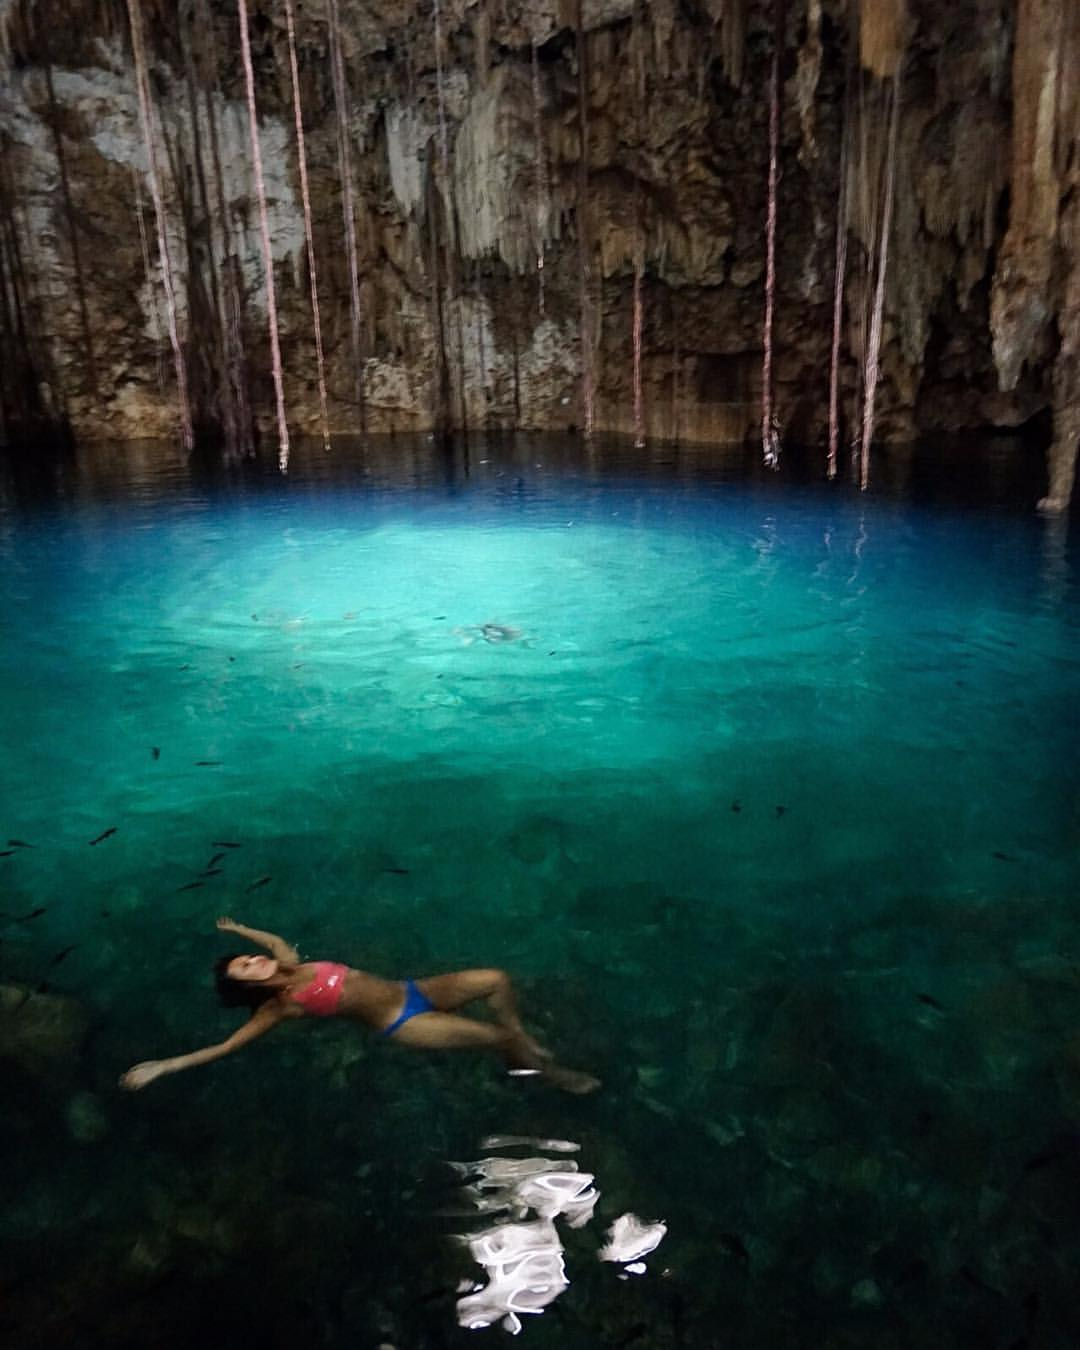 Mid-day dip into Cenote X'keken    #CrossBackCamiBra by @publicmyth #publicmyth    #DzitnupCenote #dzitnup #Xkeken #swim #mexico #QuintanaRoo #yoamomex #cancun #playadelcarmen #tequieromexico #cenotes #wondersoftheworld  #travel #wanderlust #aroundtheworld  #DiscoverMexico #nature #travelmexico  #visityucatan #yucatan #vivamexico #travelguideyuc #welltravelled #underwater #blue #caves #Valladolid #stalactites